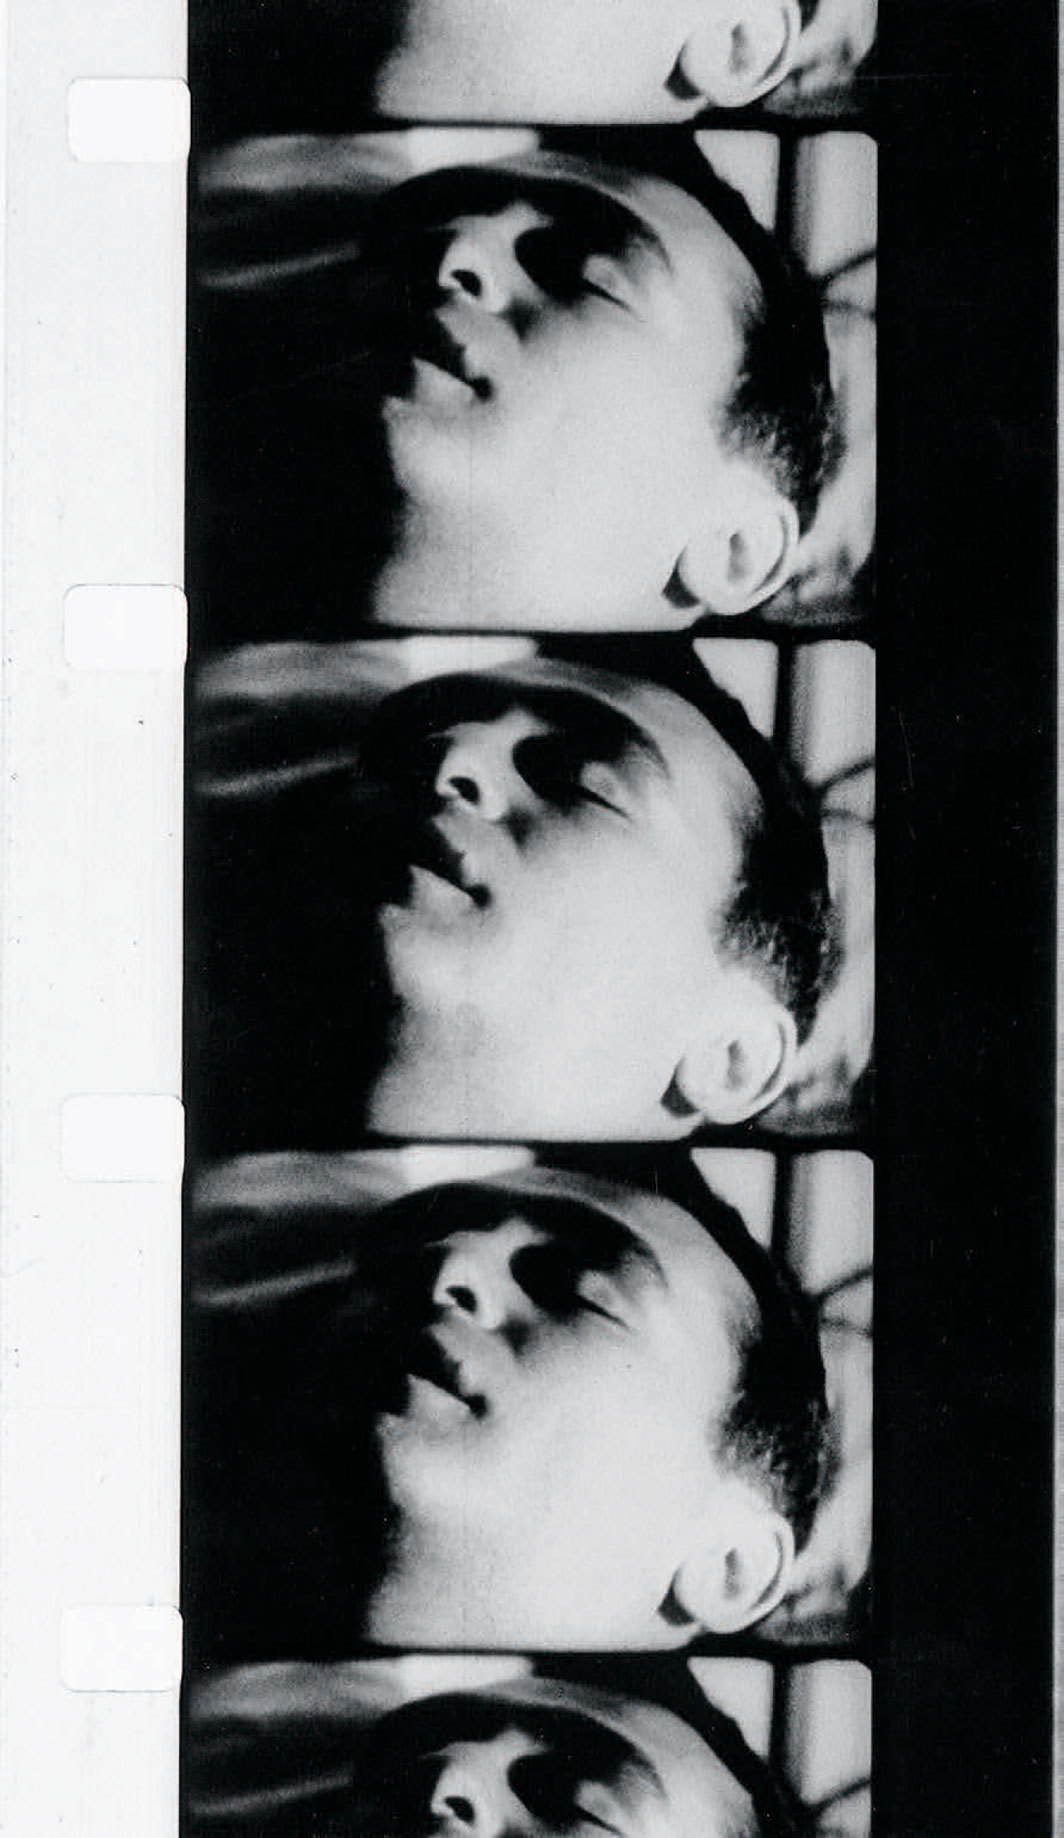 Film strip from Andy Warhol's Sleep, 1963, 16 mm, black-and-white, silent, 321 minutes. John Giorno. © The Andy Warhol Foundation forthe Visual Arts, Inc./Artists Rights Society (ARS), New York; CNAC/MNAM/Dist. RMN-Grand Palais/Art Resource, NY.